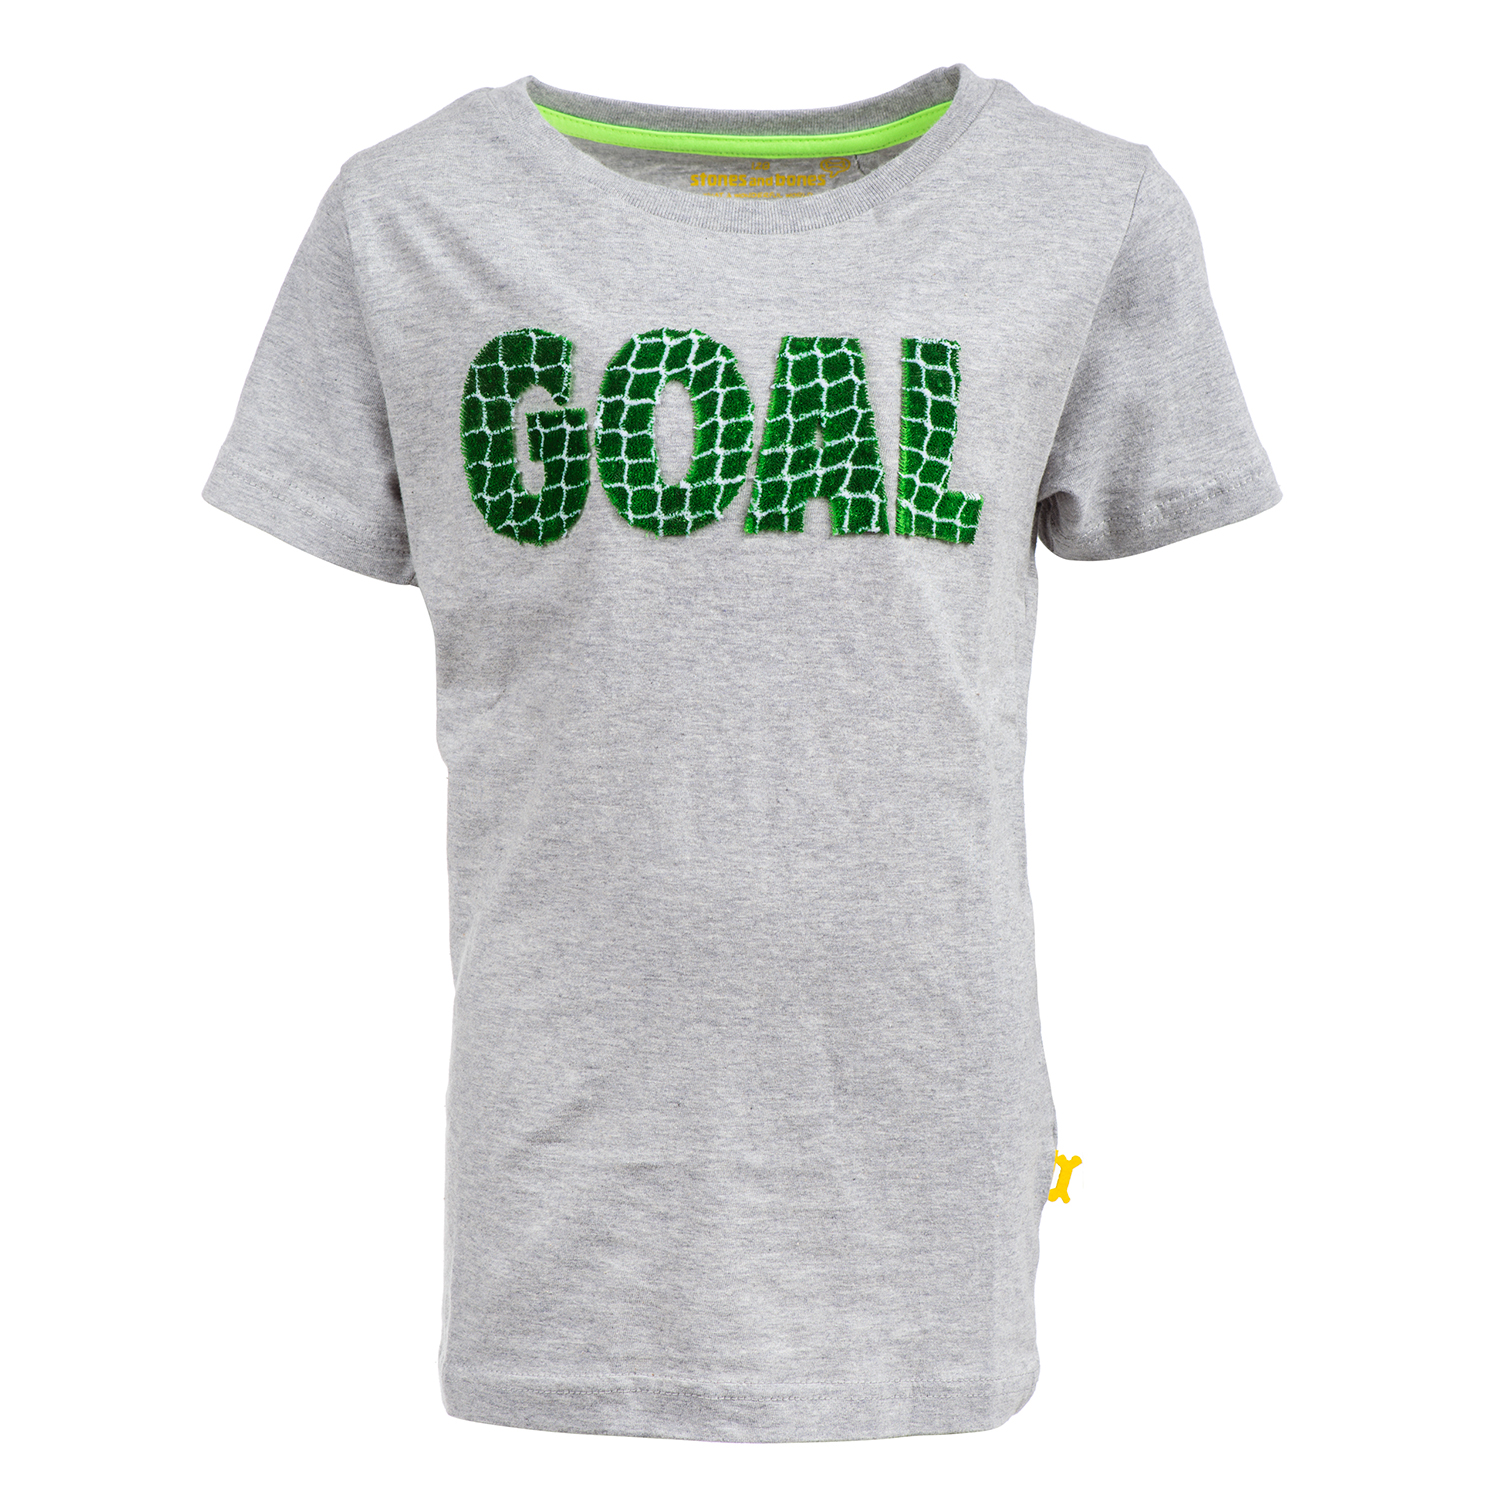 Russell - GOAL m.grey